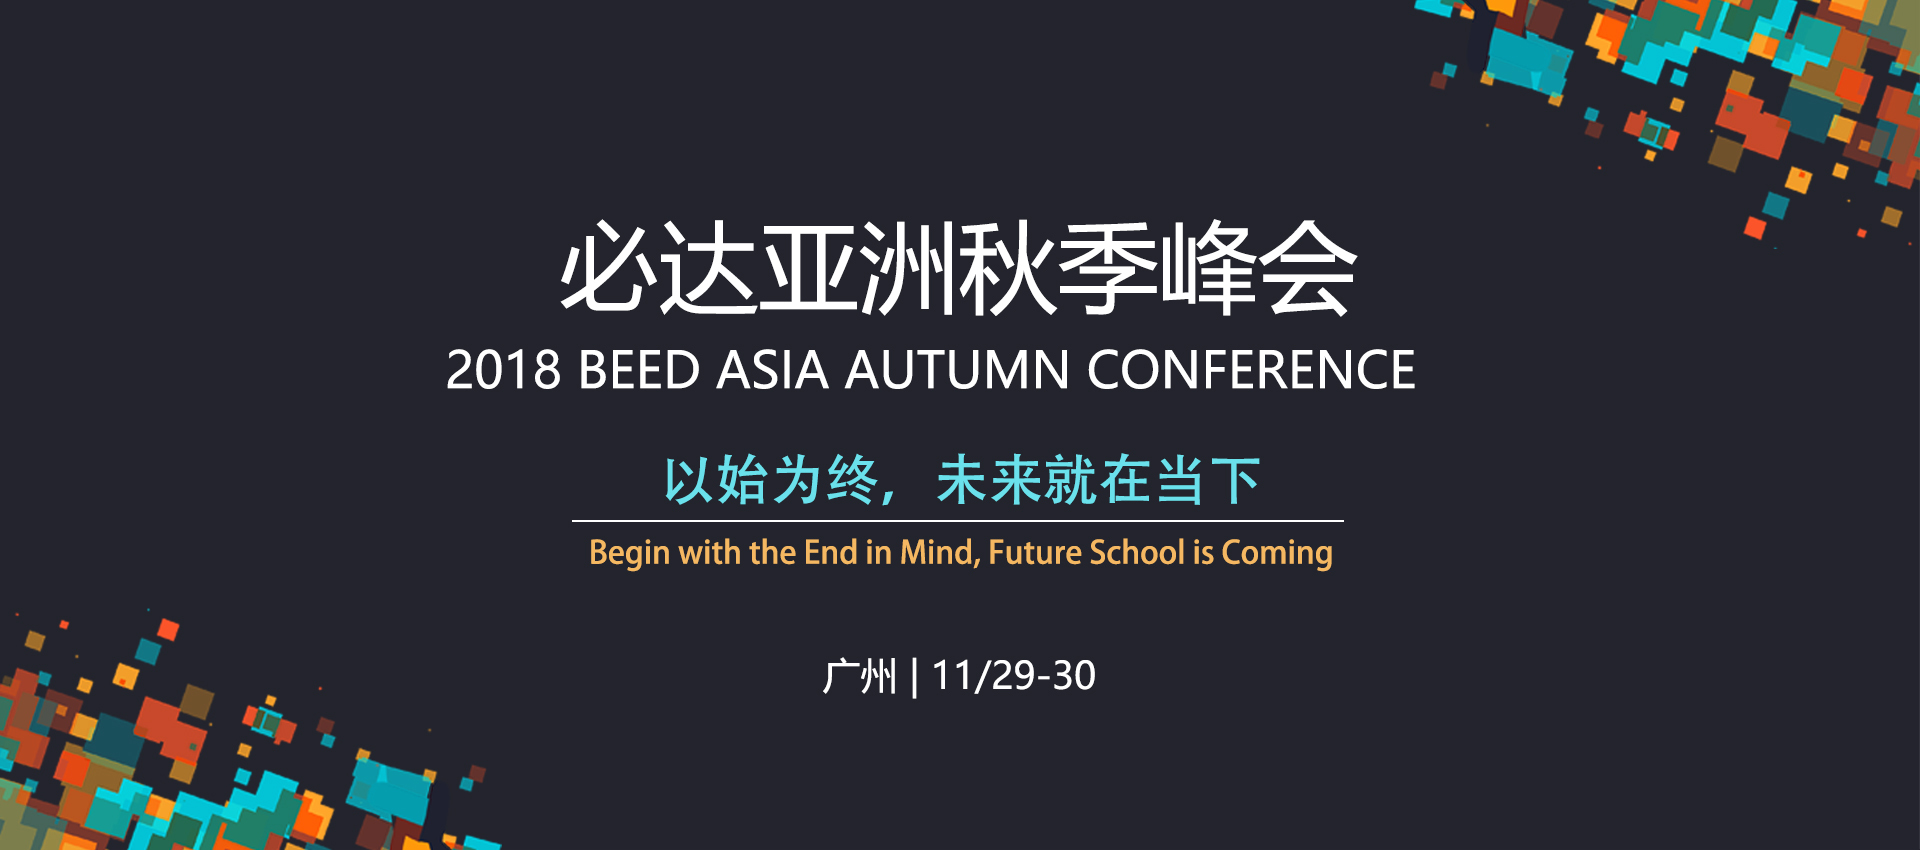 2018必达亚洲秋季峰会 BEED Asia Autumn Conference